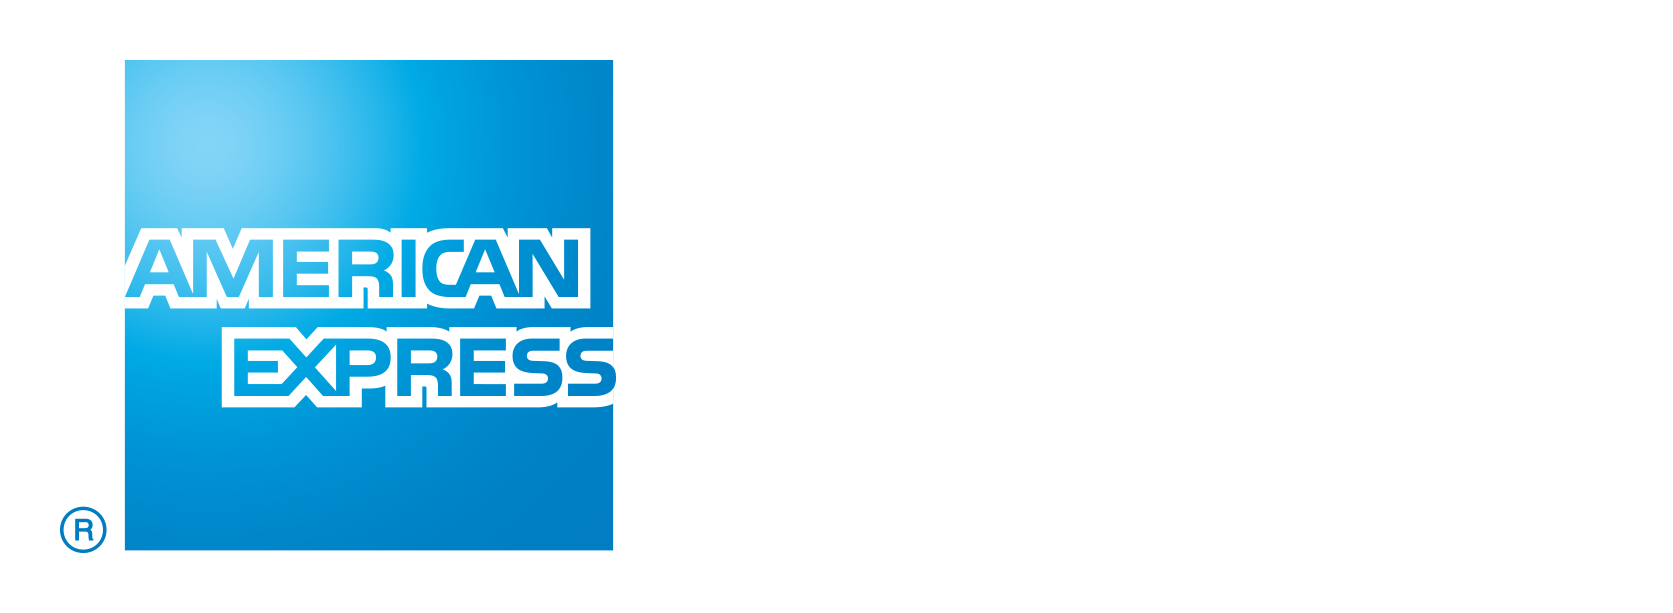 American express logo png. Offer stan amex